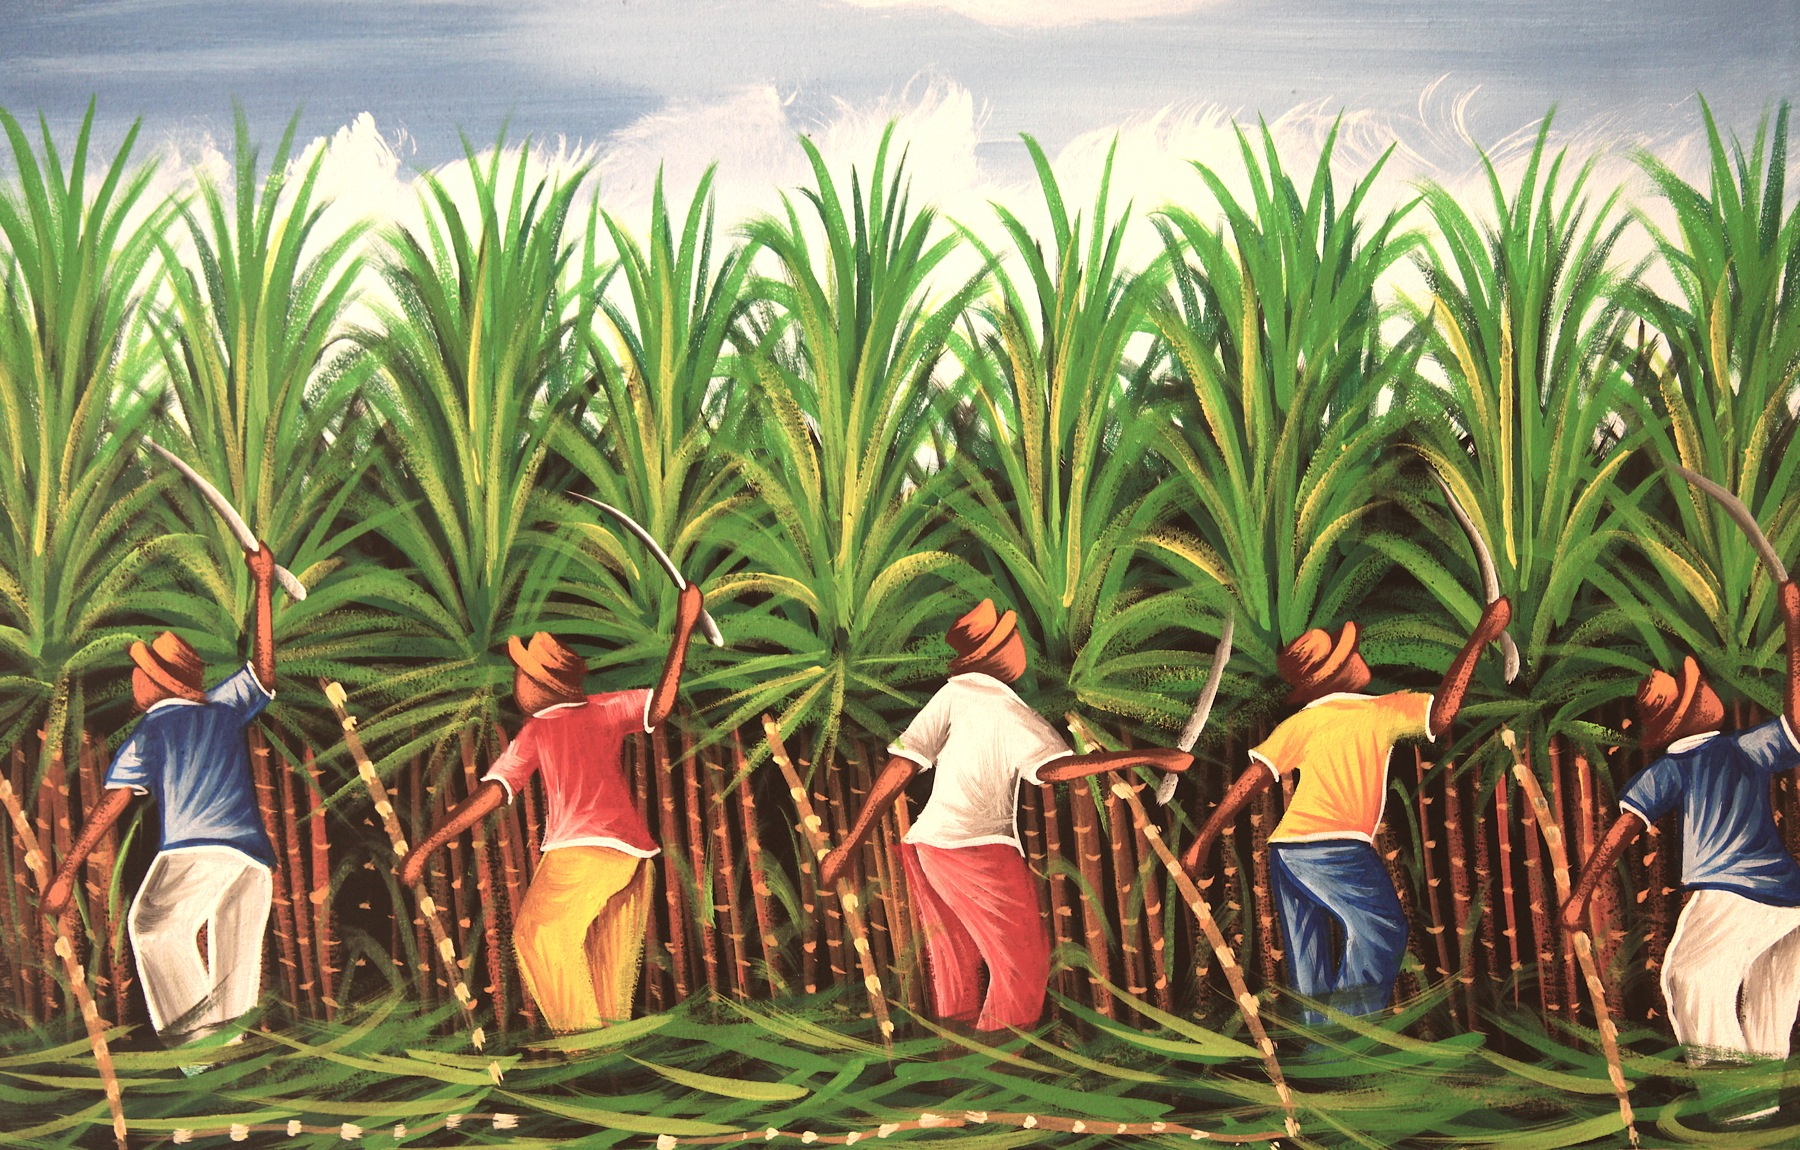 How To Sale Paintings In India